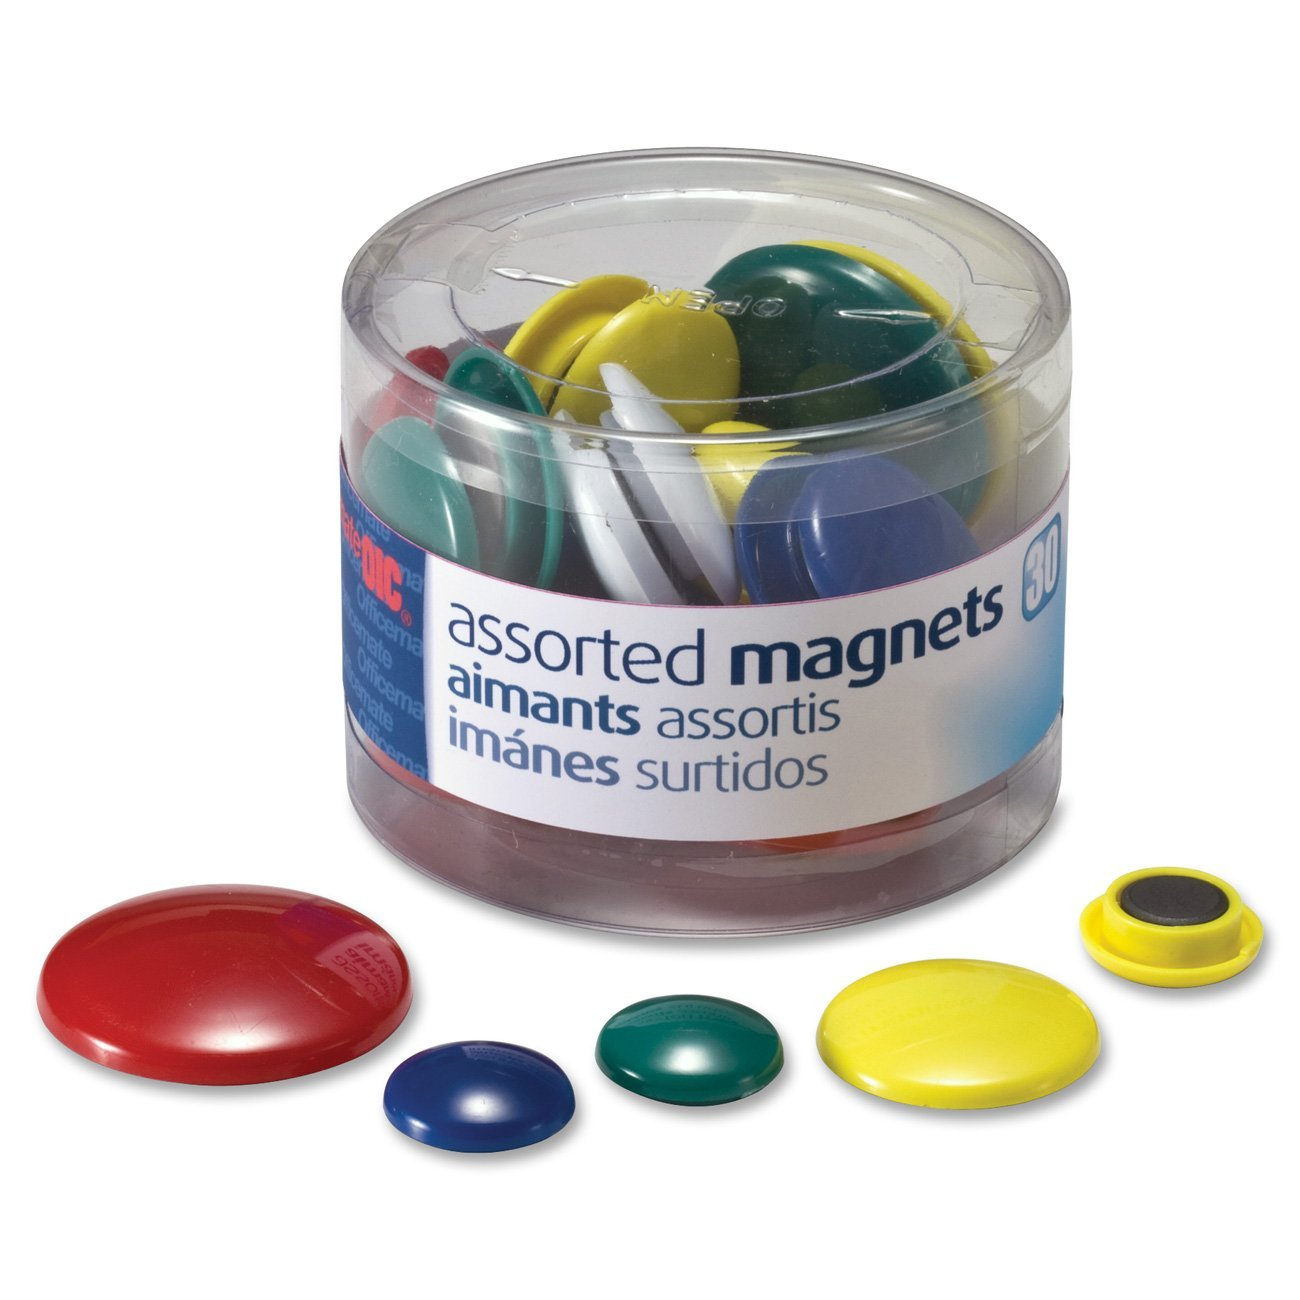 Magnets, Assorted Sizes and Colors, 30 per Tub (92500), Pack of 12